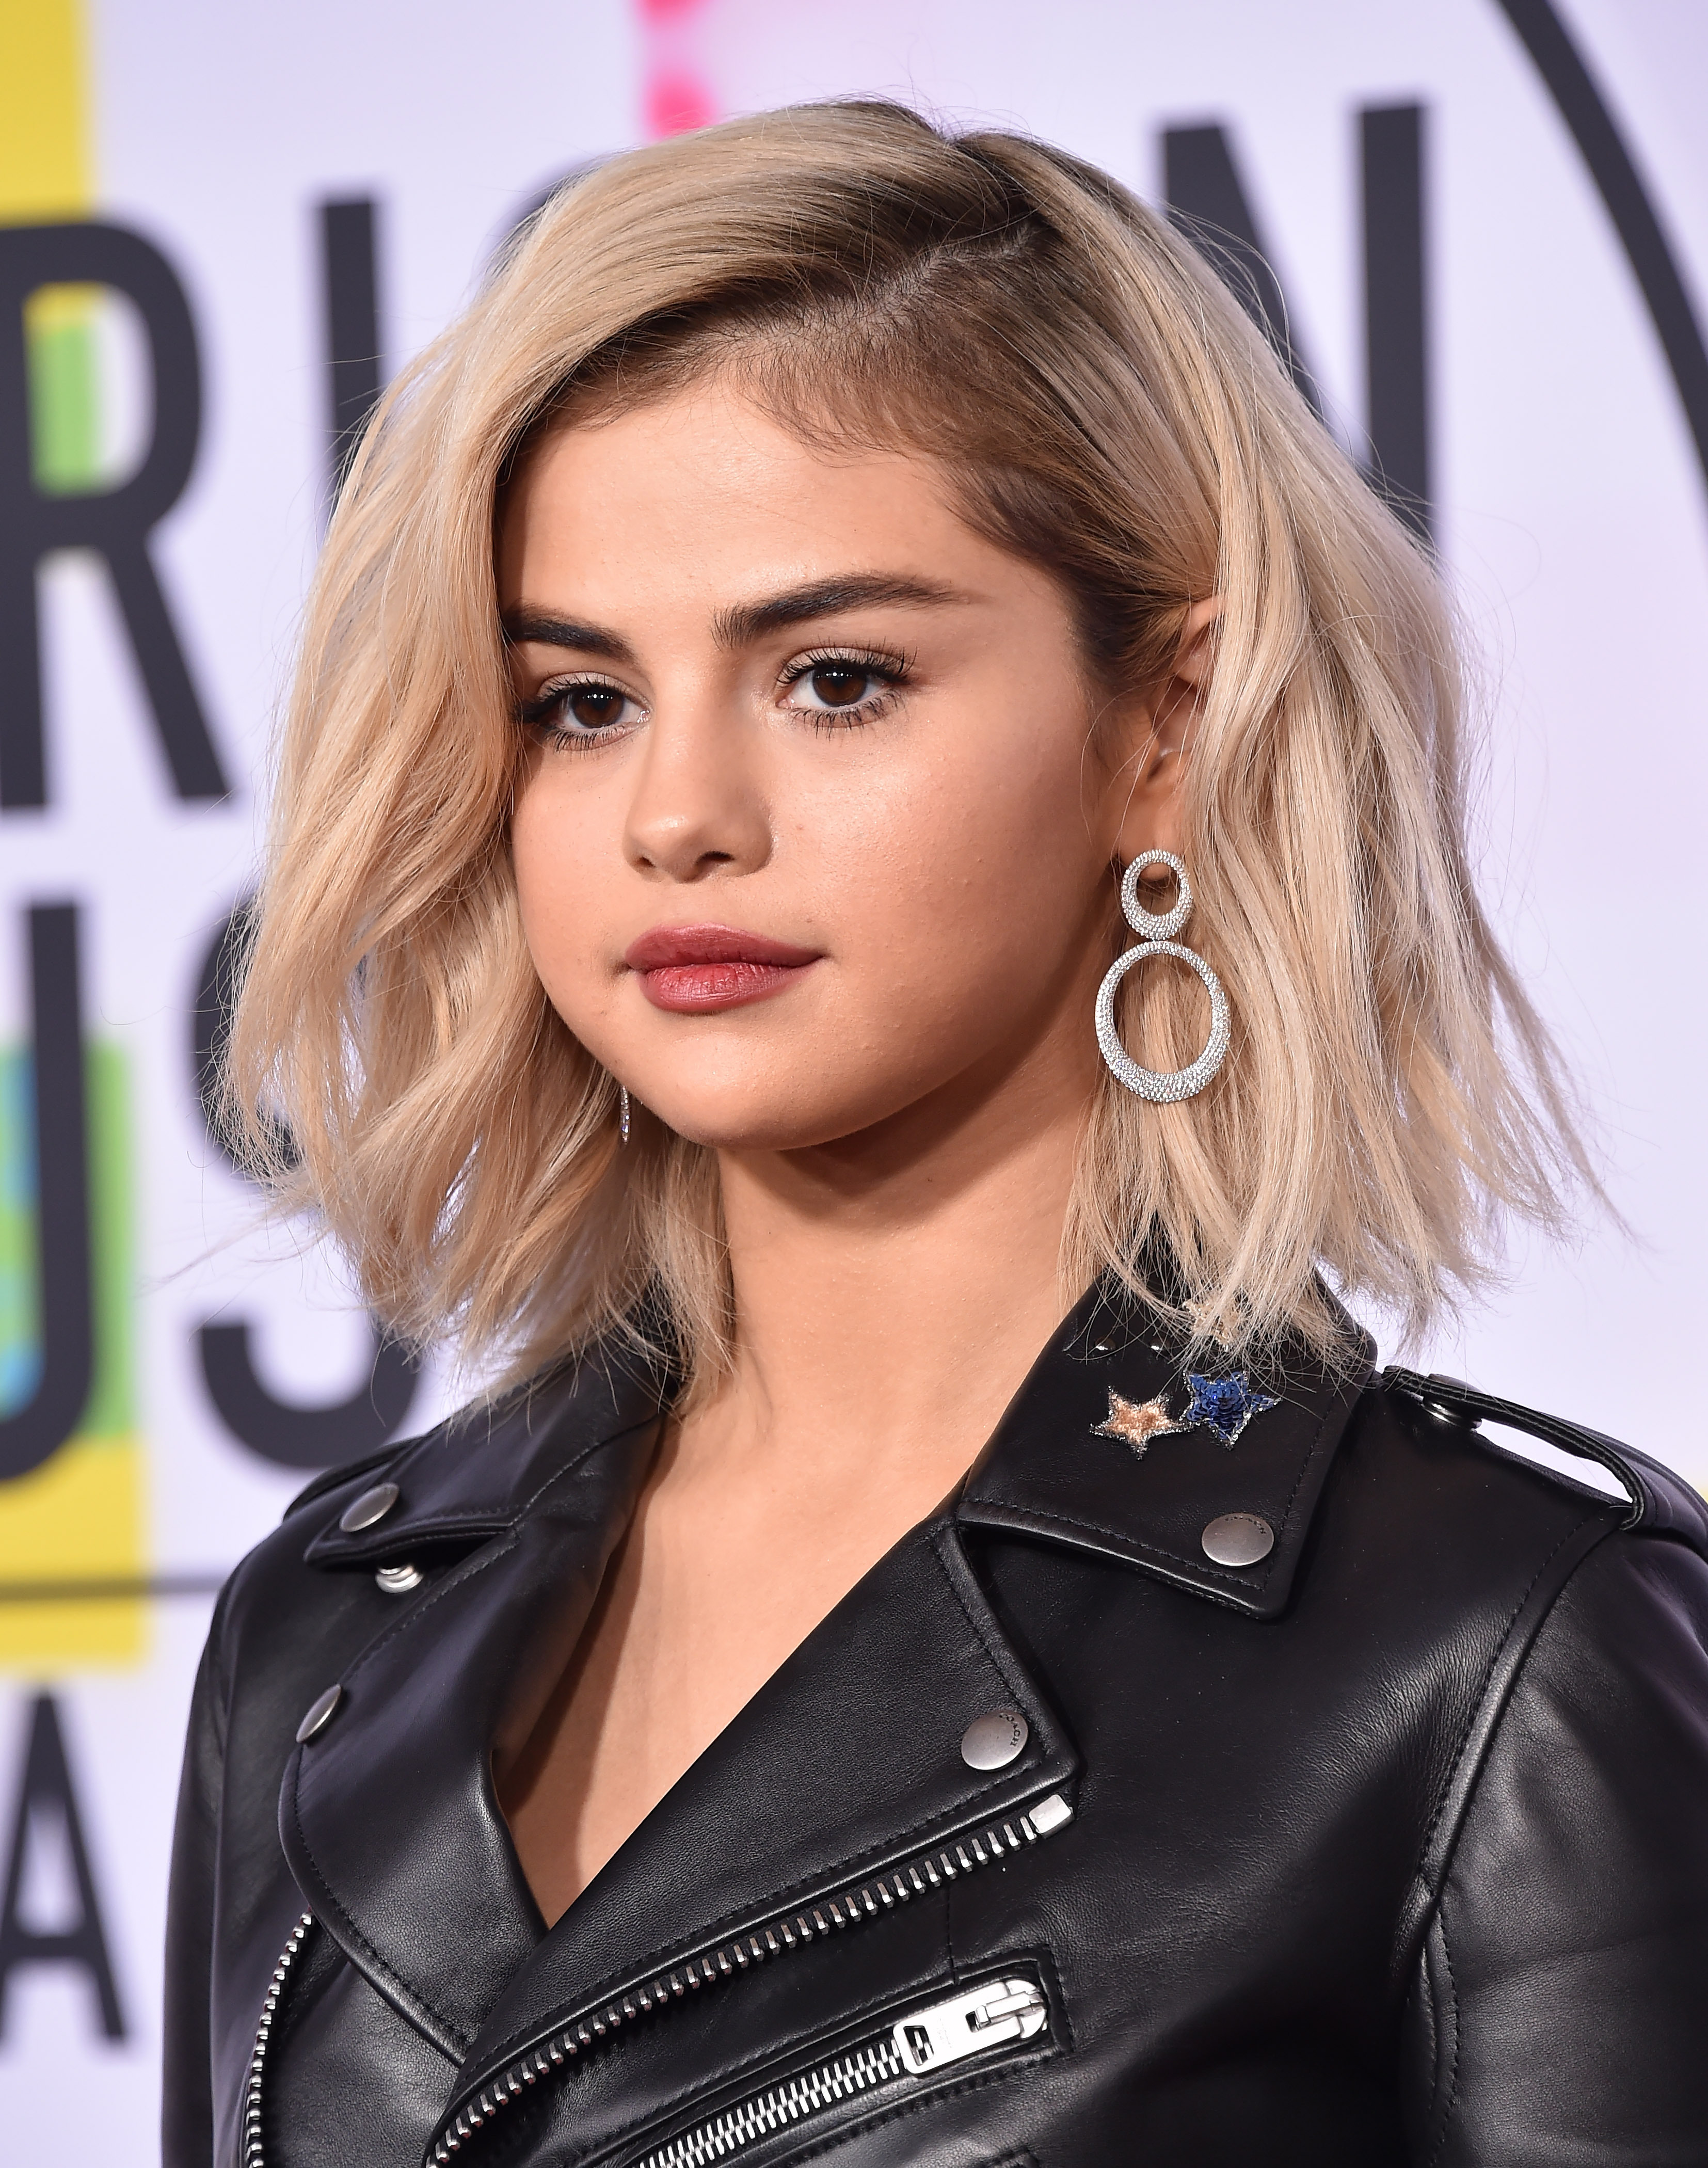 Selena Gomez reveals her experience with depression and anxiety